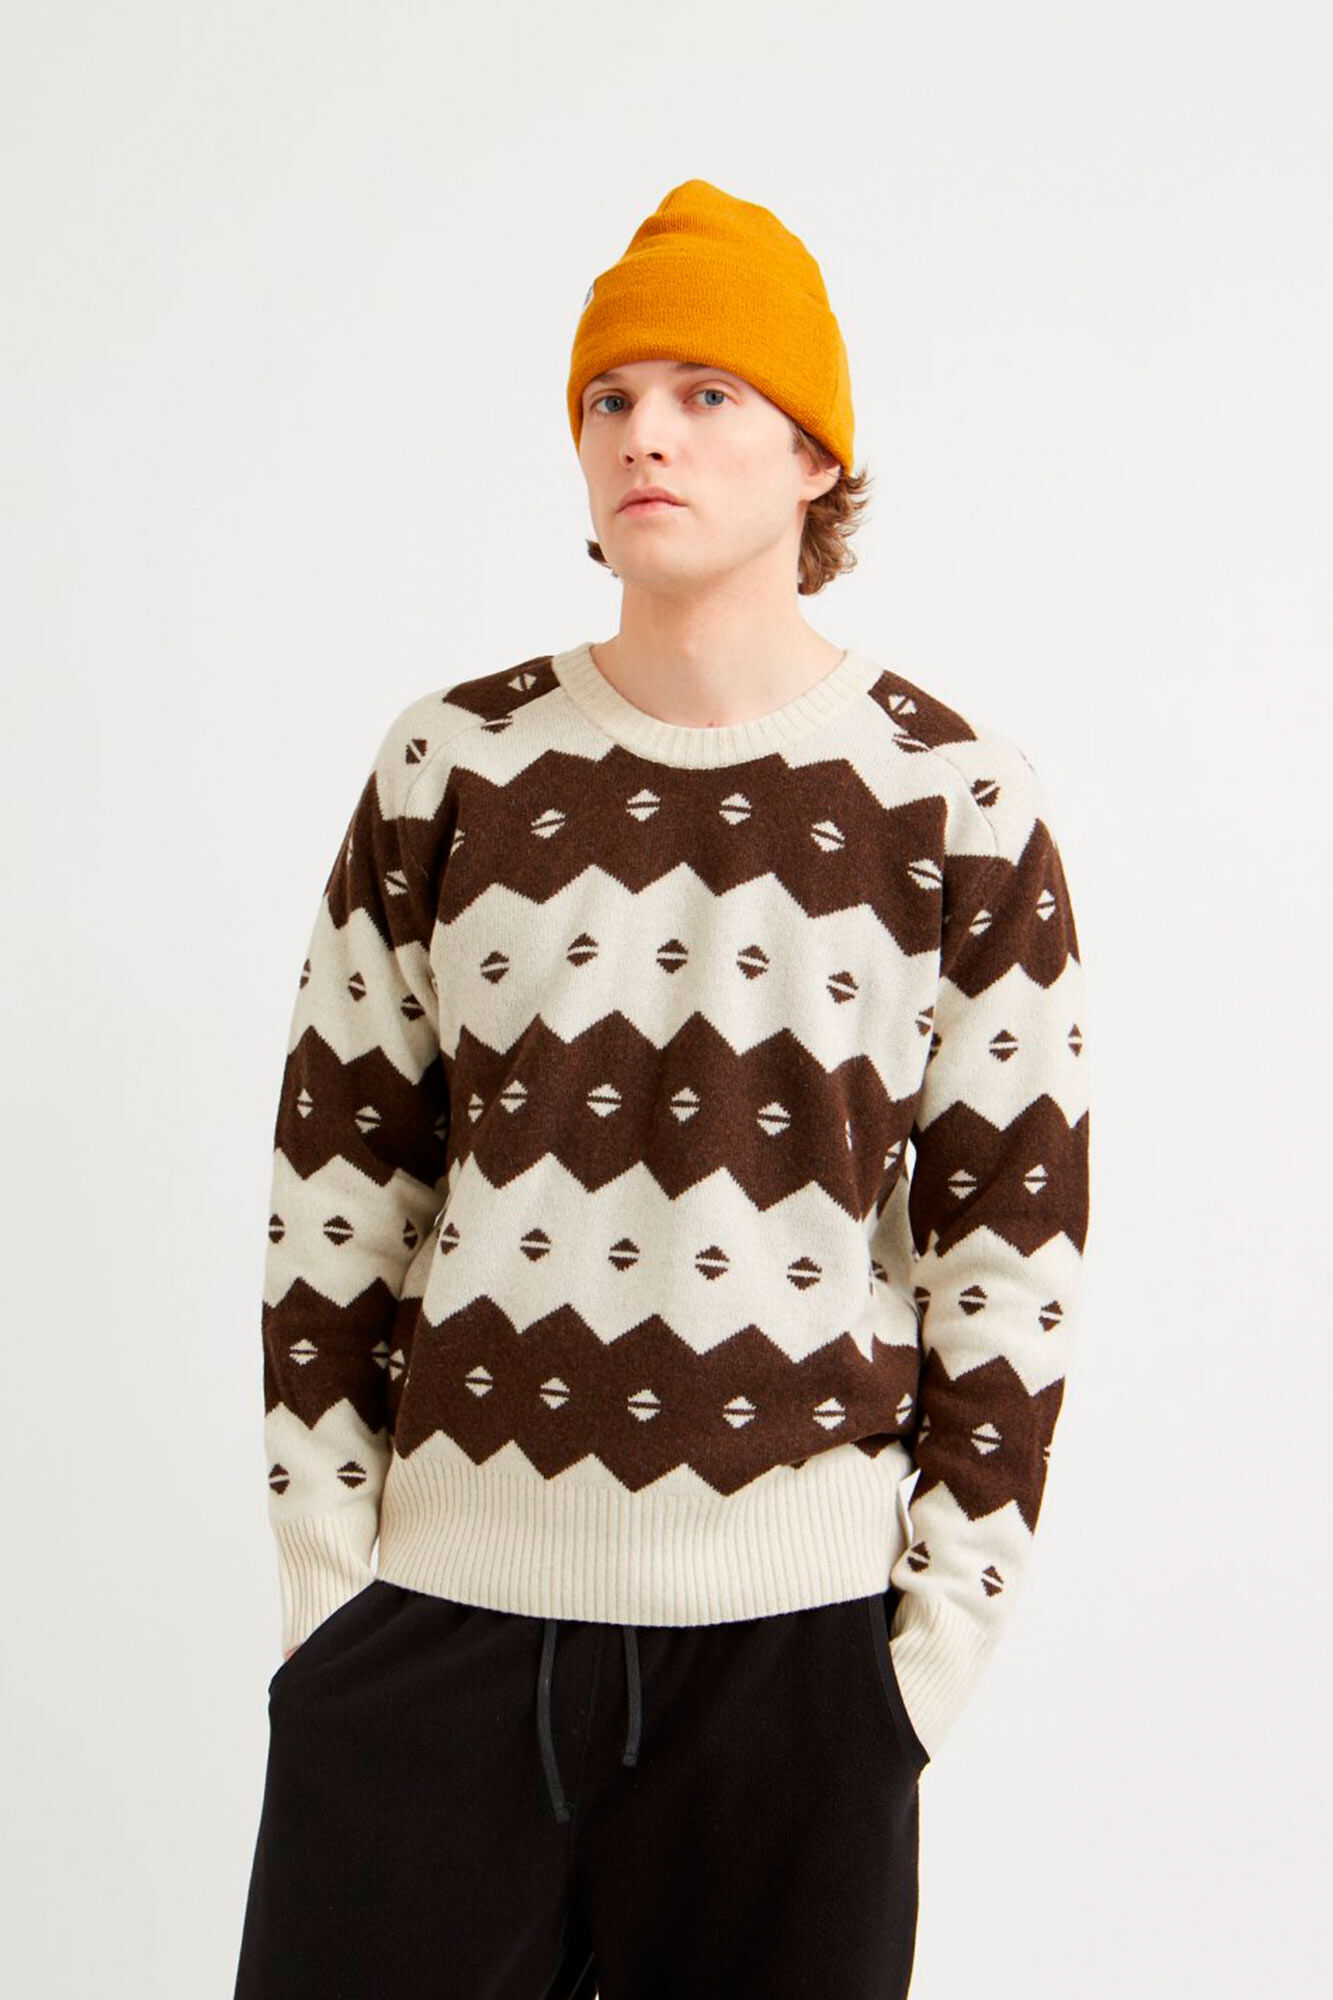 Kevin sweater 11935510-4137, OFF-WHITE JACQUARD